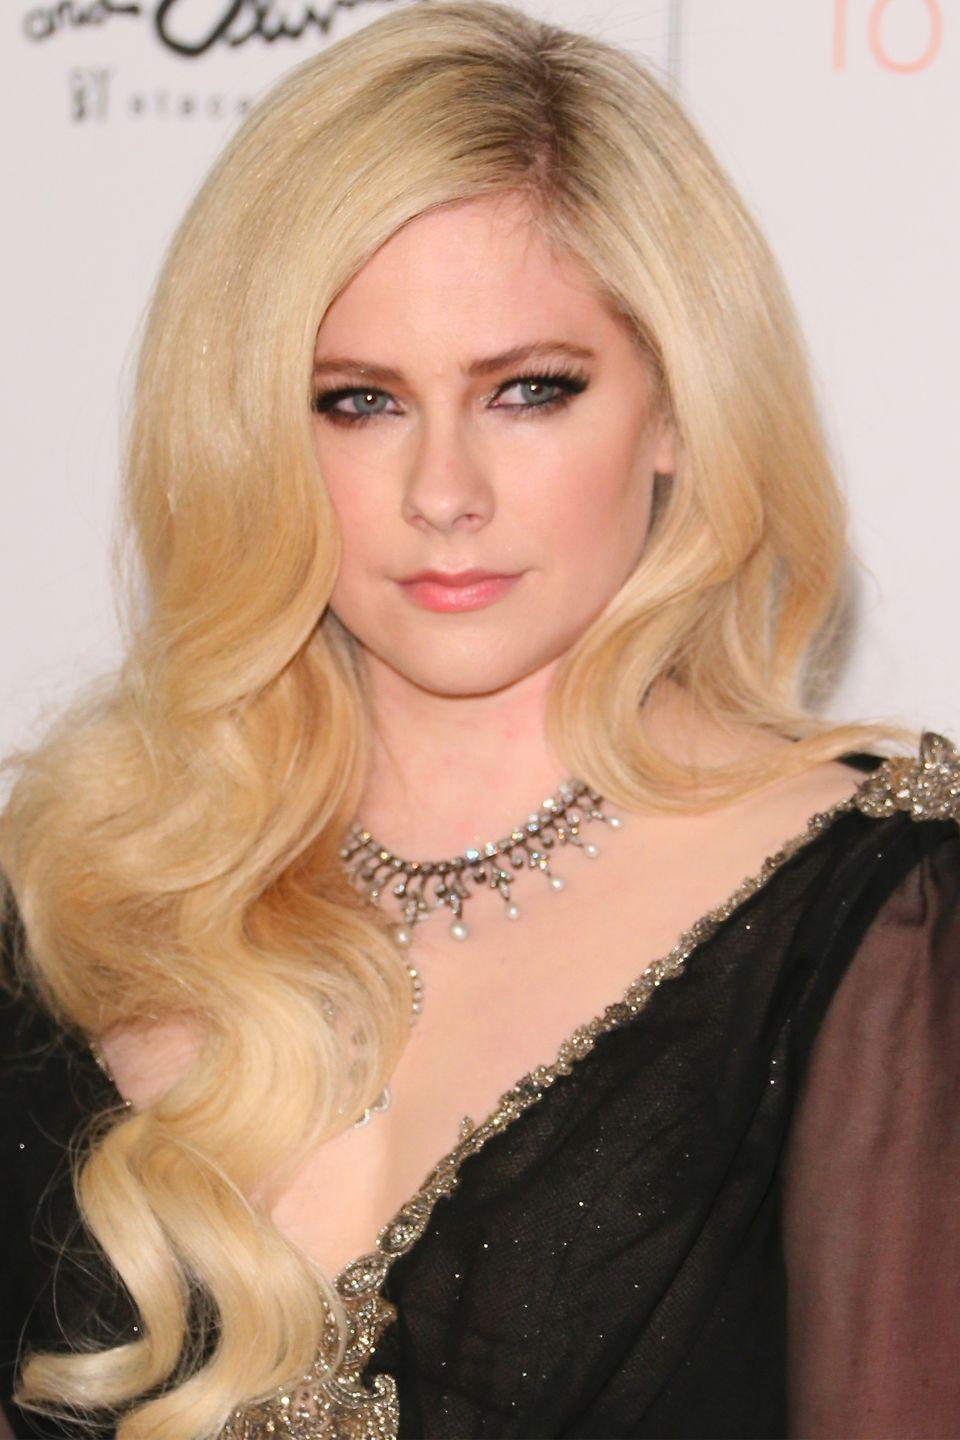 """<p>Avril <a href=""""https://www.cbsnews.com/pictures/musicians-who-quit-school/15/"""" rel=""""nofollow noopener"""" target=""""_blank"""" data-ylk=""""slk:dropped out"""" class=""""link rapid-noclick-resp"""">dropped out</a> of school at 17 when she signed her record contract.</p>"""